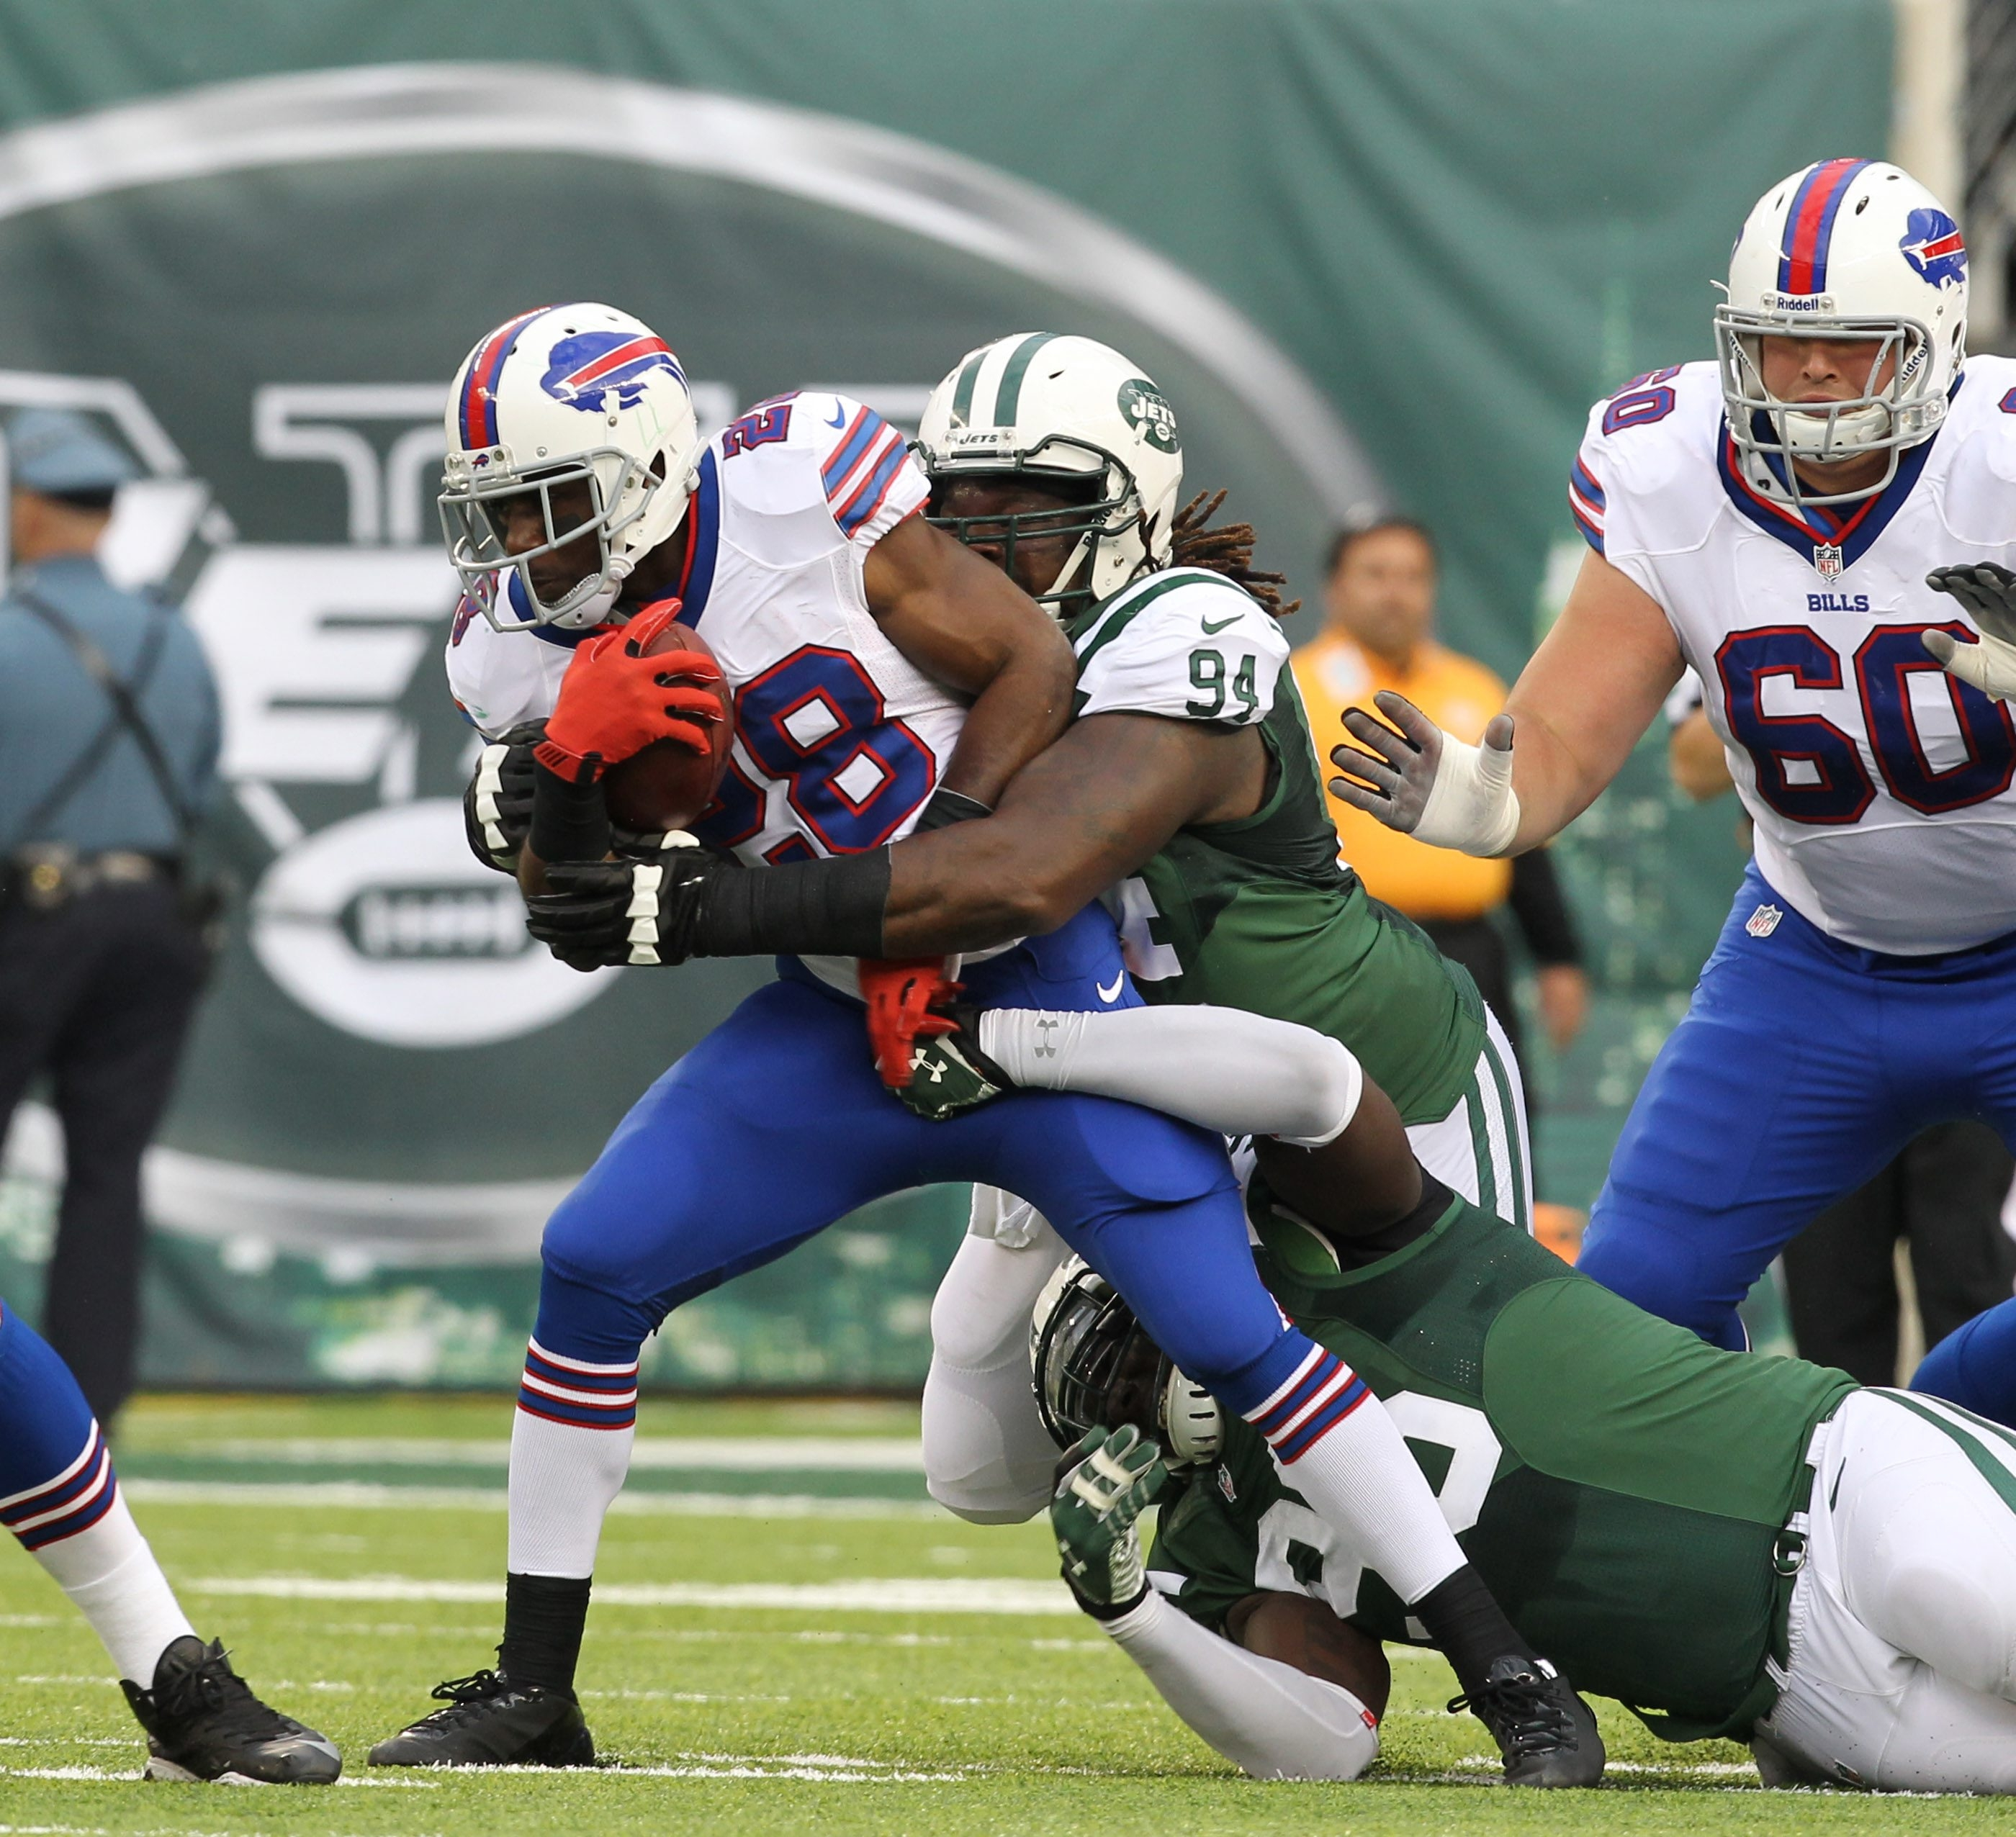 C.J. Spiller (28)  says things won't get any easier for the Bills' offense until EJ Manuel starts hitting his throws down field. {James P. McCoy/ Buffalo News}